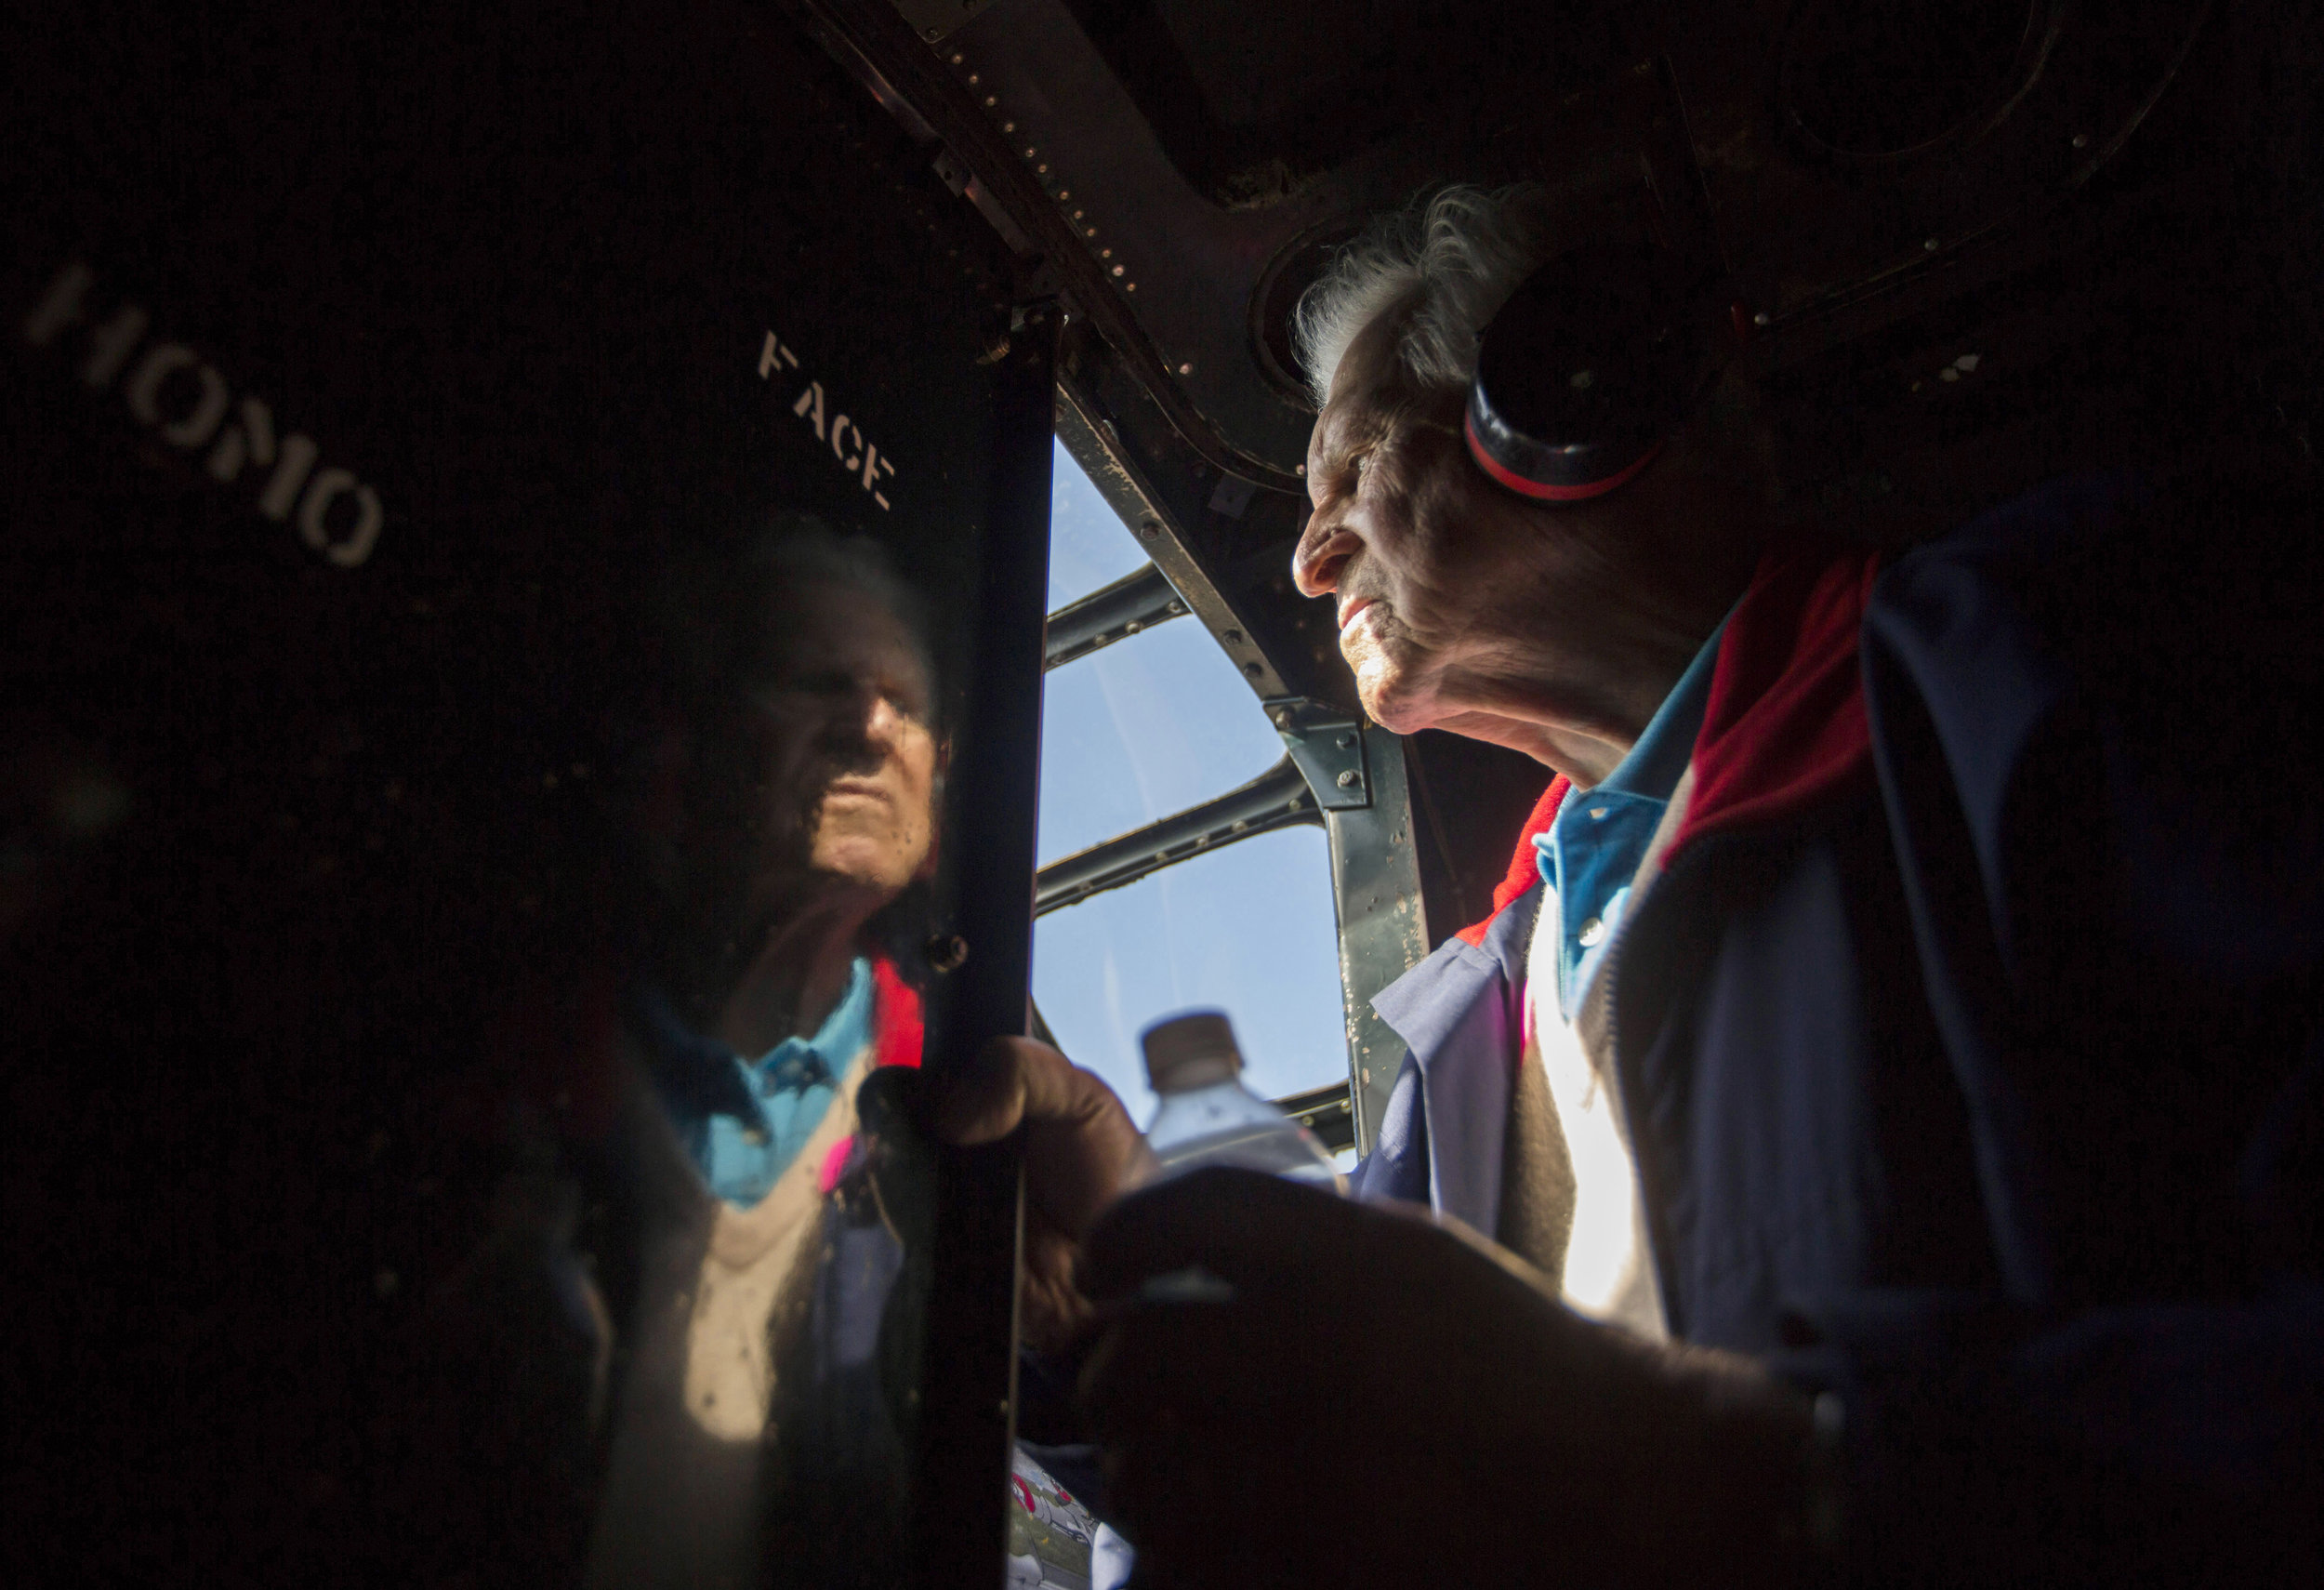 Ernie Kunz, 92, looks into the cockpit of a Consolidated B-24 Liberator during a flight from Vero Beach Fla. to the Naples Municipal Airport on Thursday, Feb. 1, 2017. The flight was made possible by the Collings Foundation to give veterans an opportunity to experience flight in the restored aircraft.